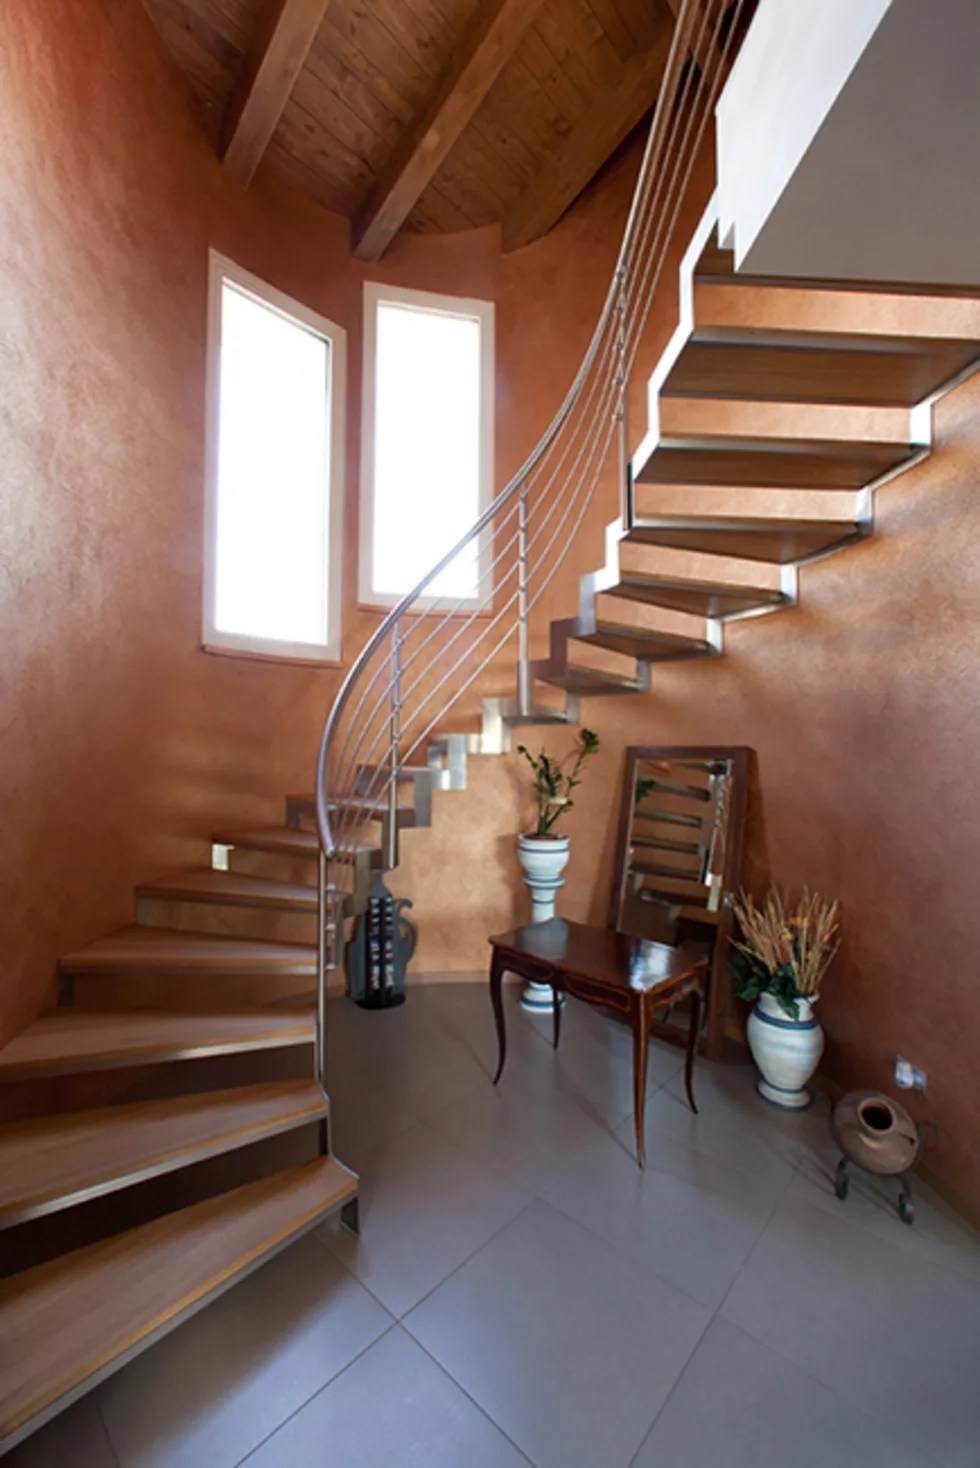 All You Need To Know About Building Stairs In Your House